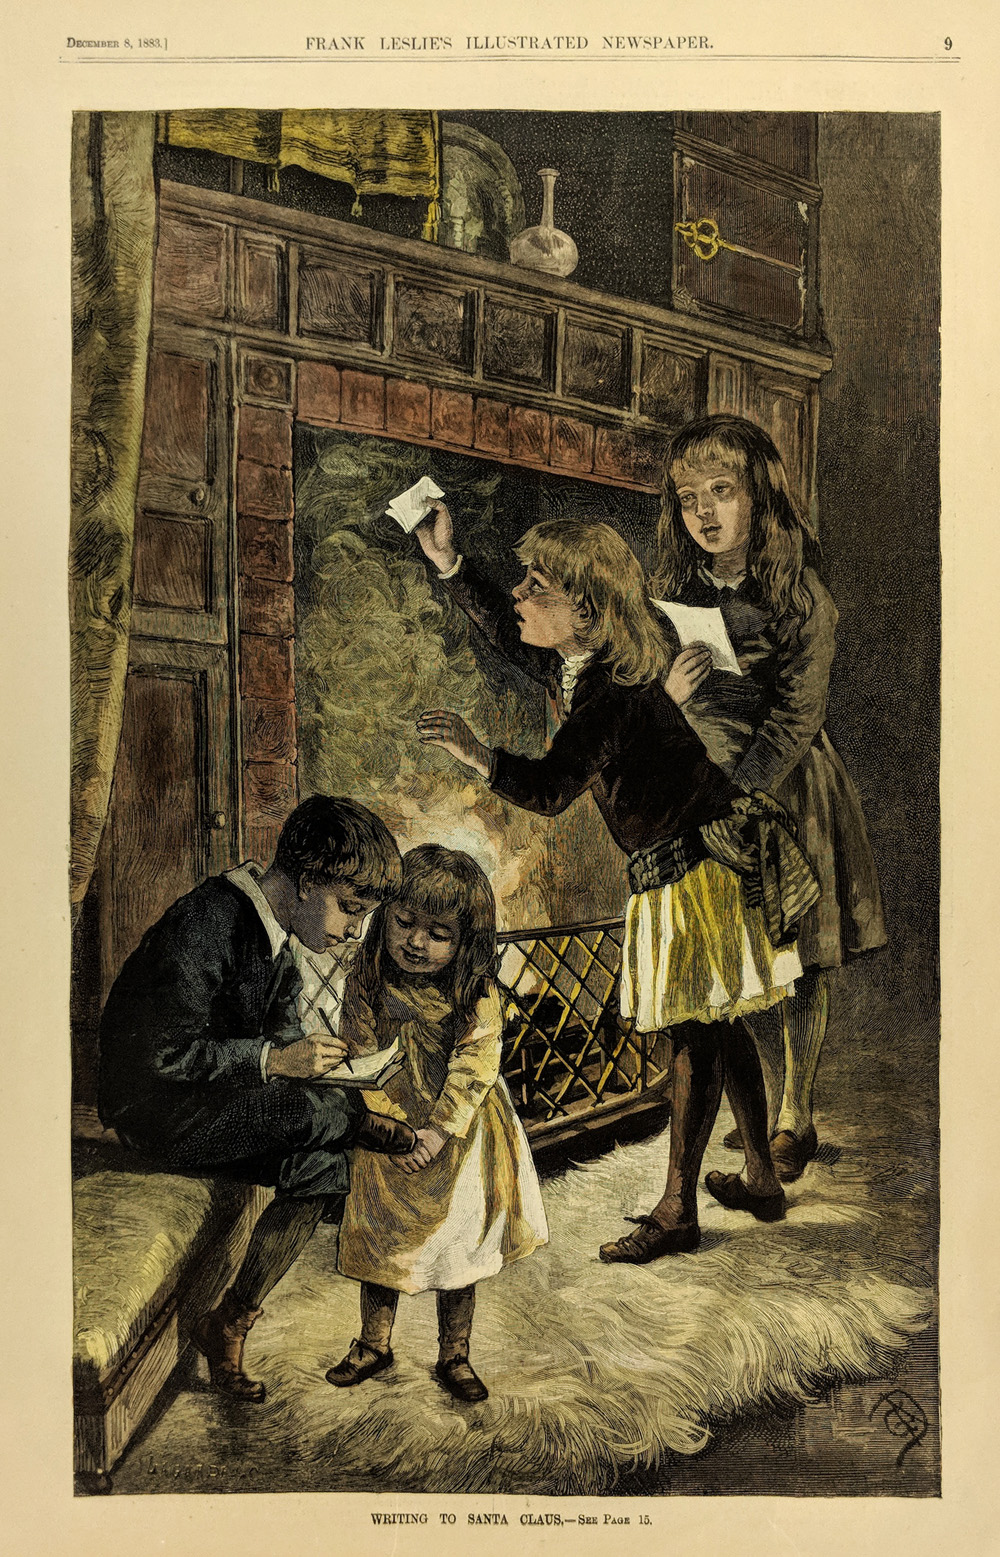 1883 Hand Colored Wood Engraving Titled Writing To Santa Claus Featured In Frank Leslies Illustrated Newspaper 16 X 10 1 2